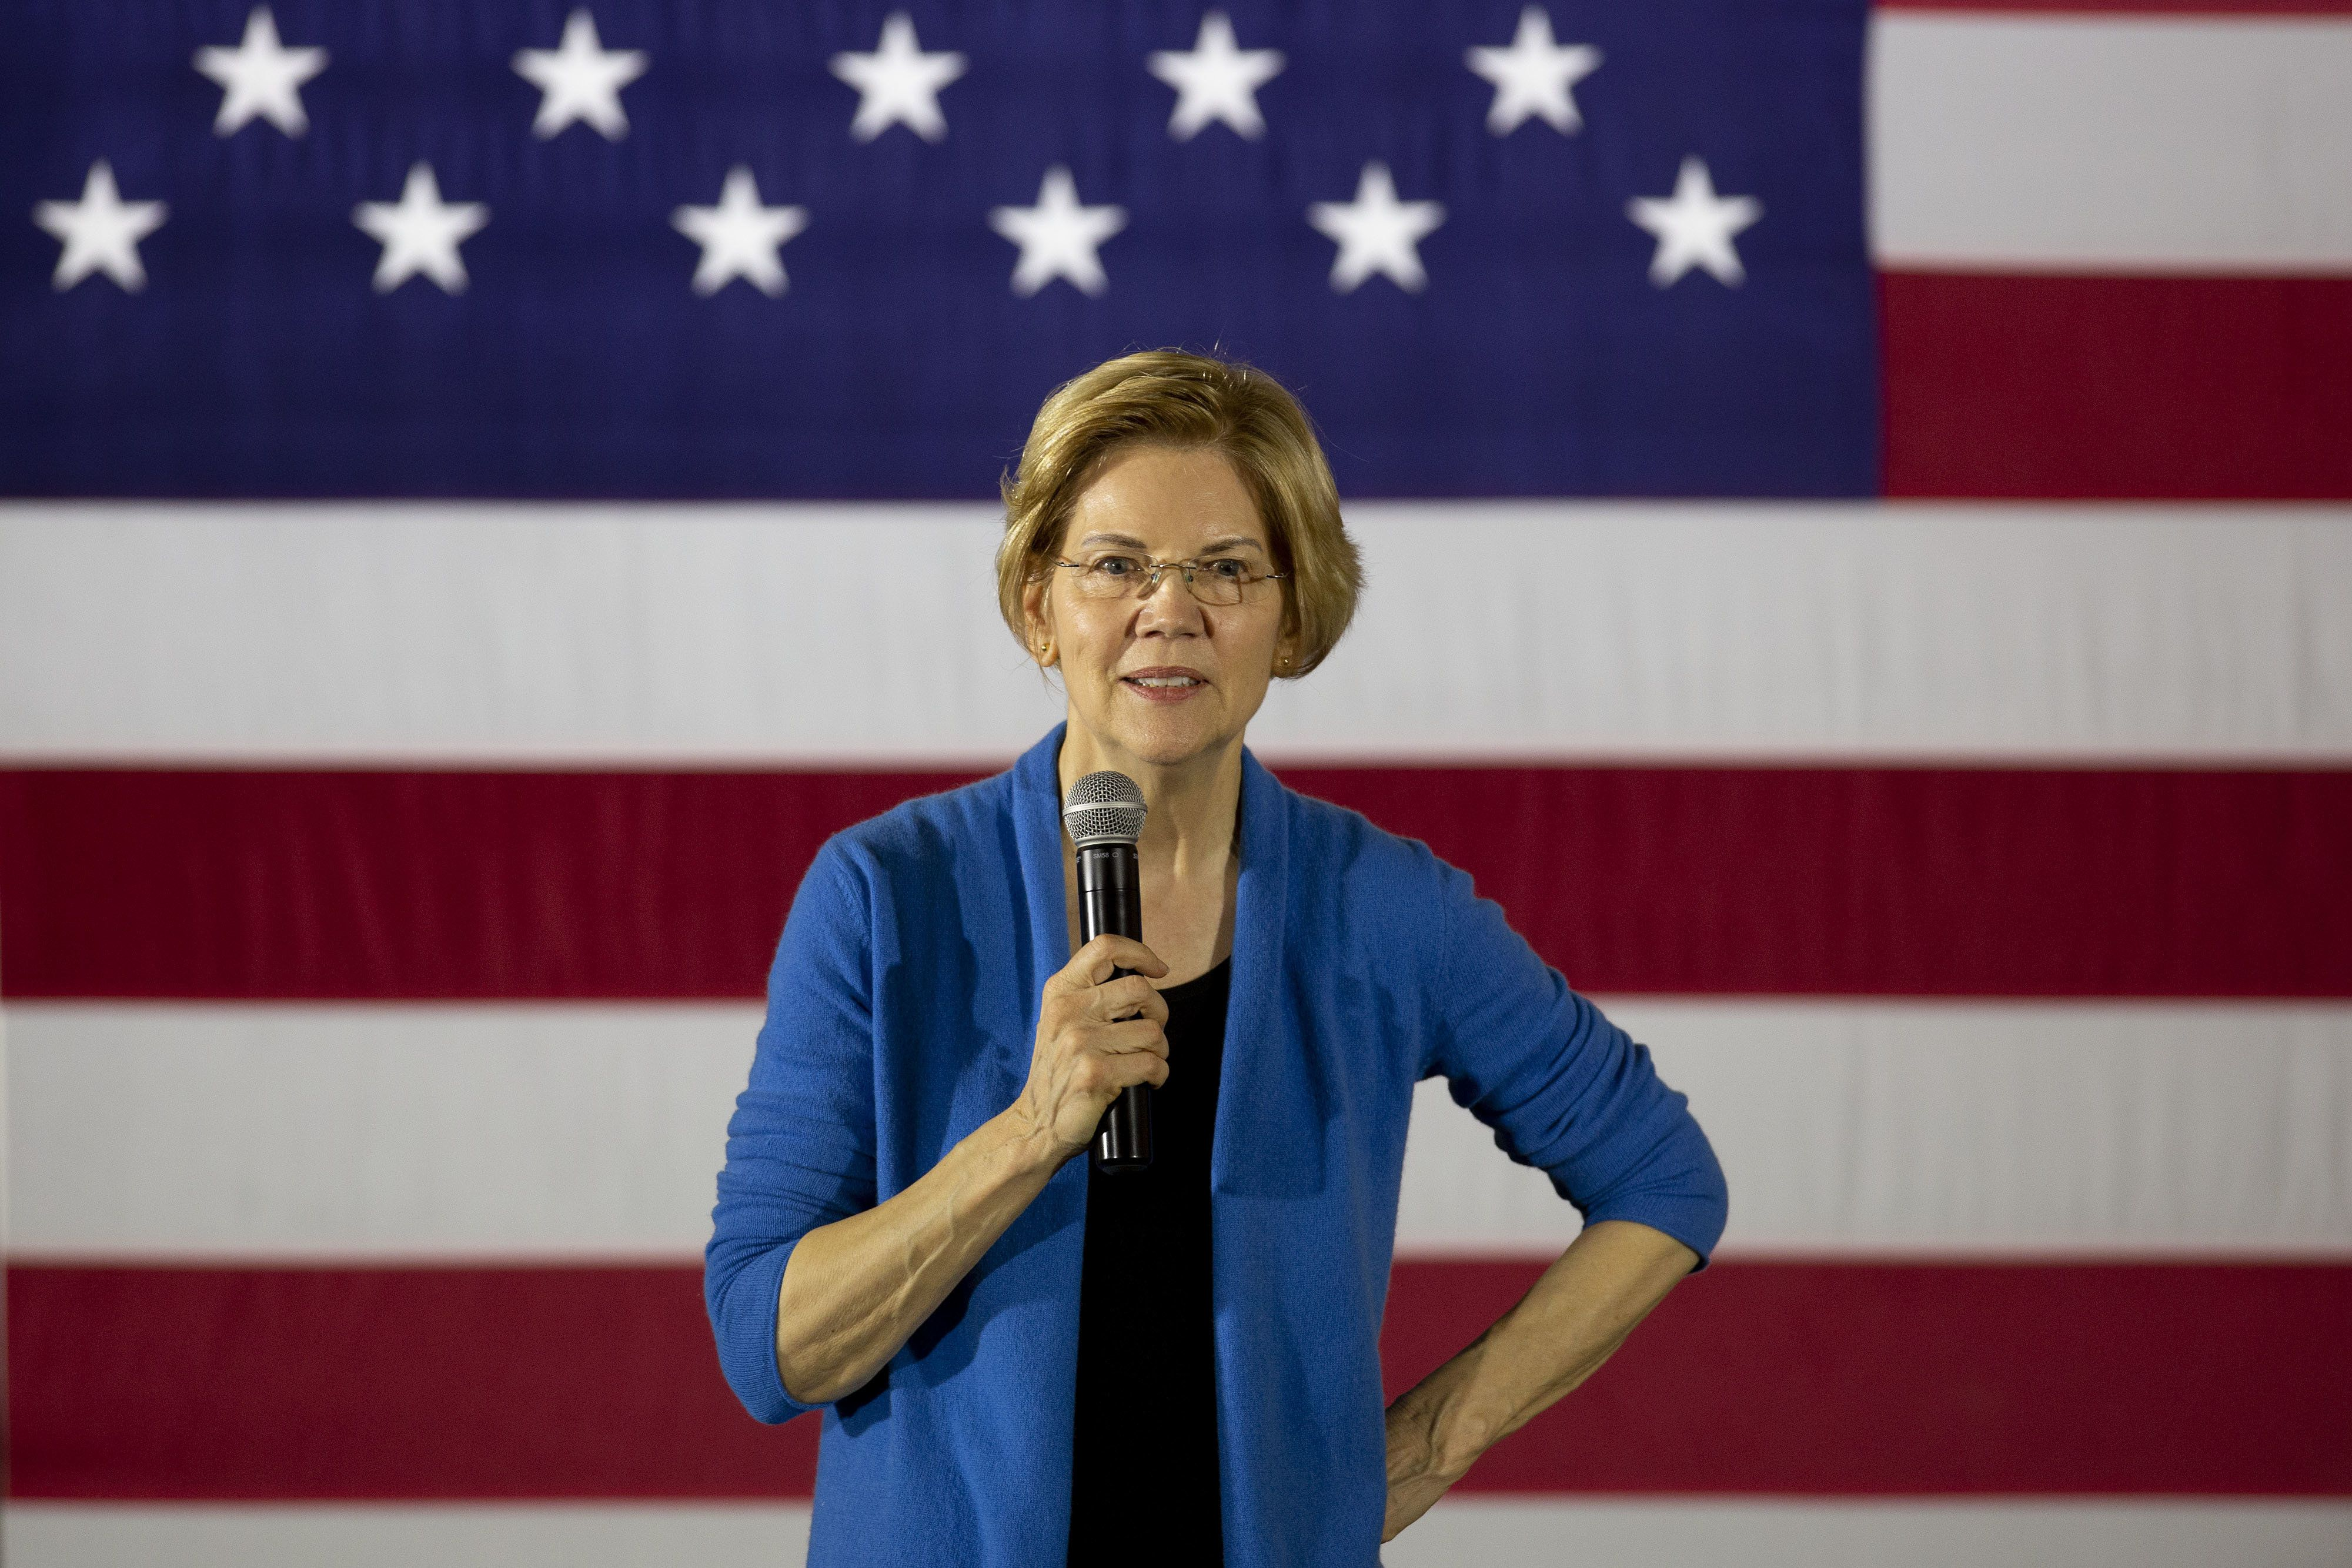 Senator Elizabeth Warren, a Democrat from Massachusetts and 2020 presidential candidate, speaks during a campaign stop in Iowa City, Iowa, U.S., on Sunday, Feb. 10, 2019. Warren made it official on Saturday: She's running for president to change a country she says is 'rigged by the wealthy.' Photographer: Daniel Acker/Bloomberg via Getty Images